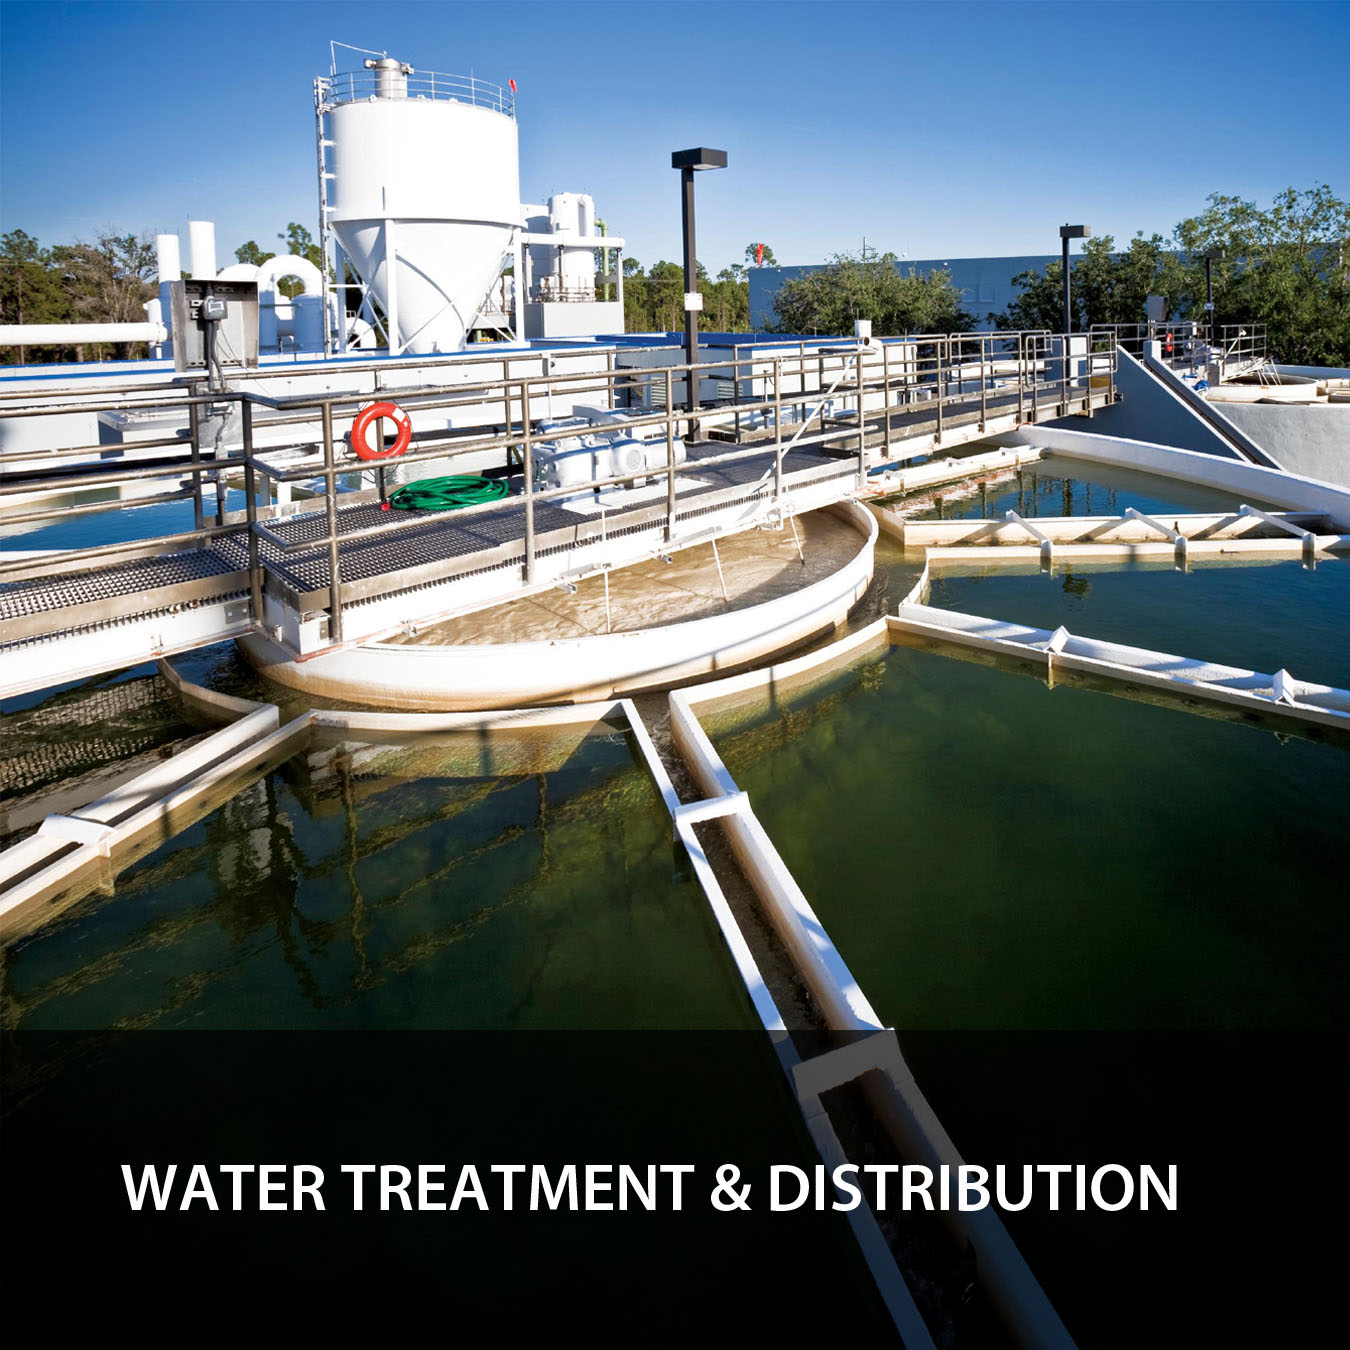 Water Treatment & Distribution